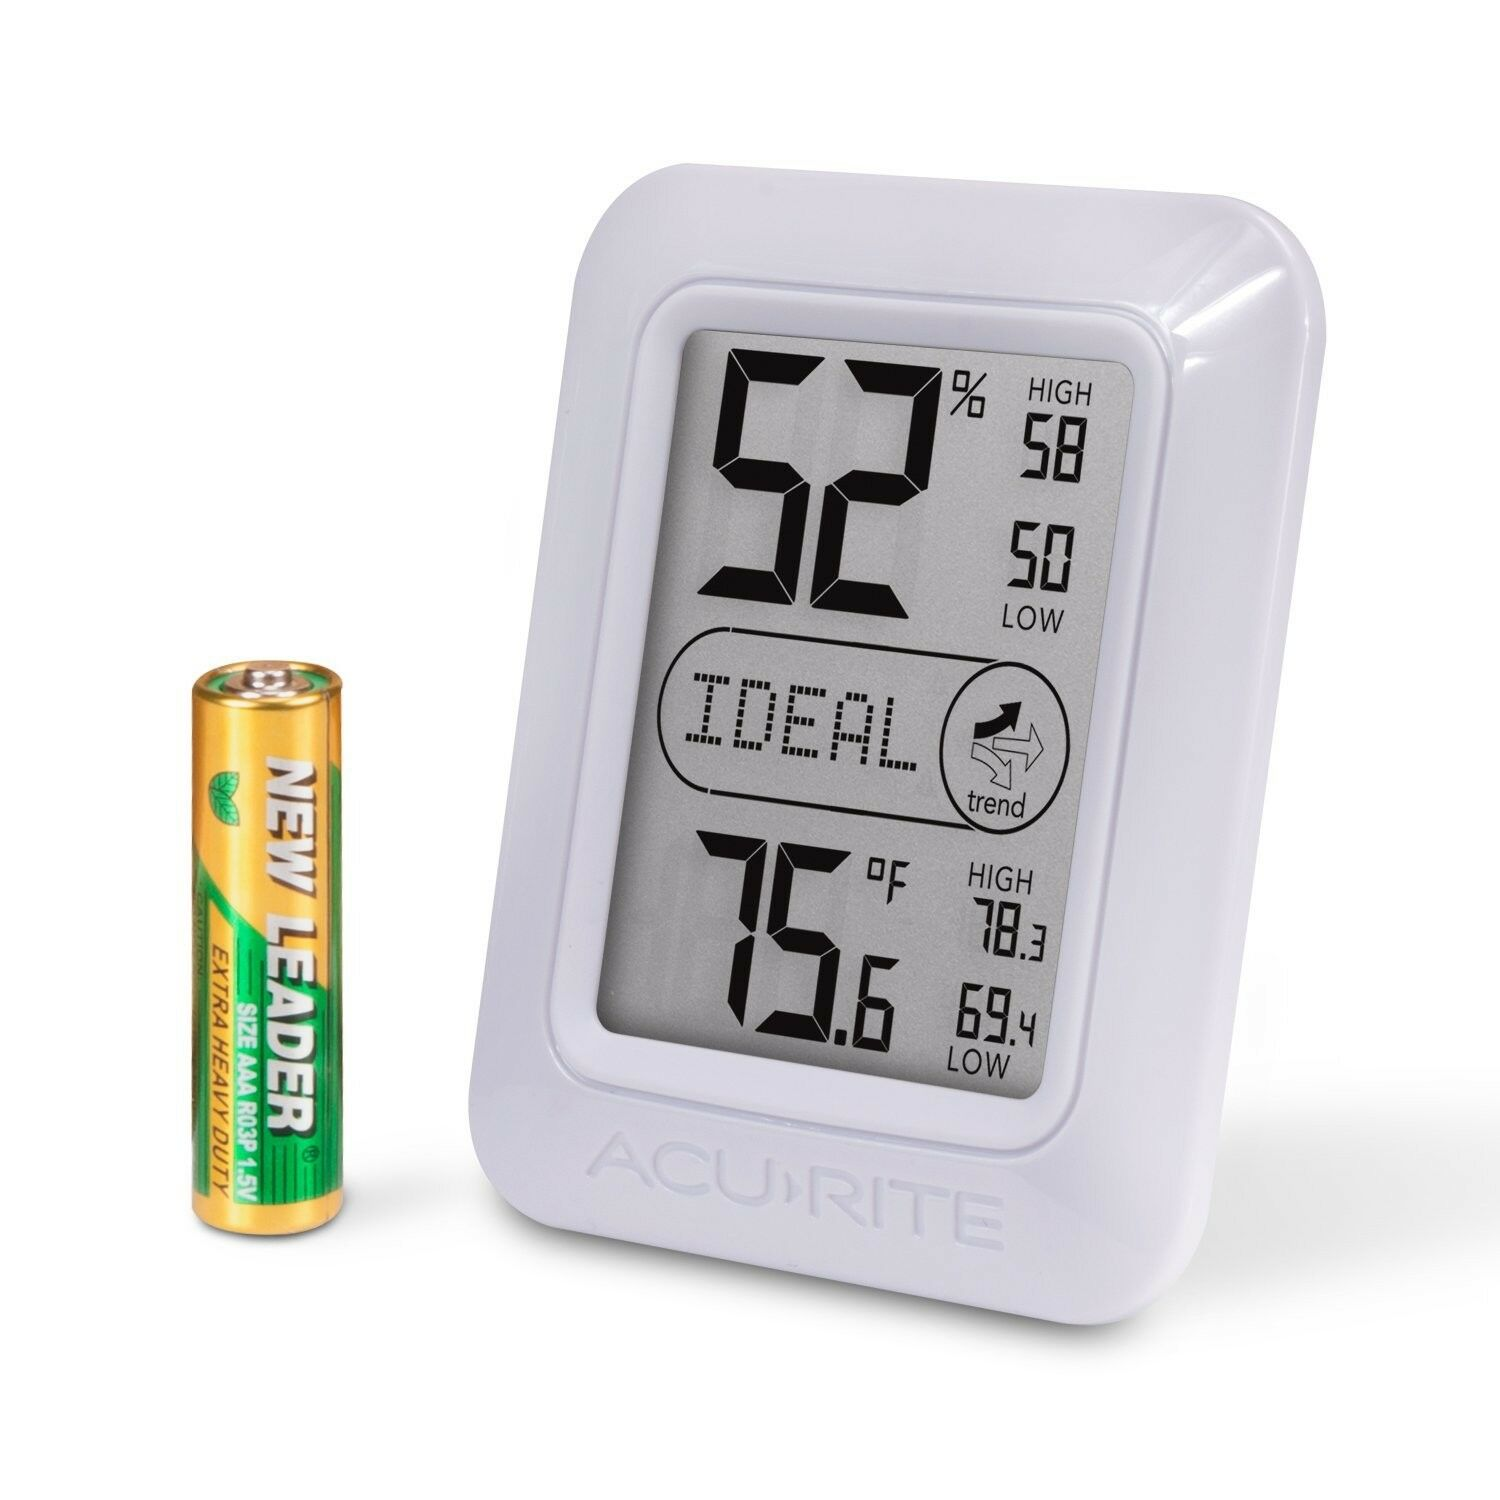 AcuRite 01131M Digital Hygrometer and Thermometer White Perfect For Weed Tent GR